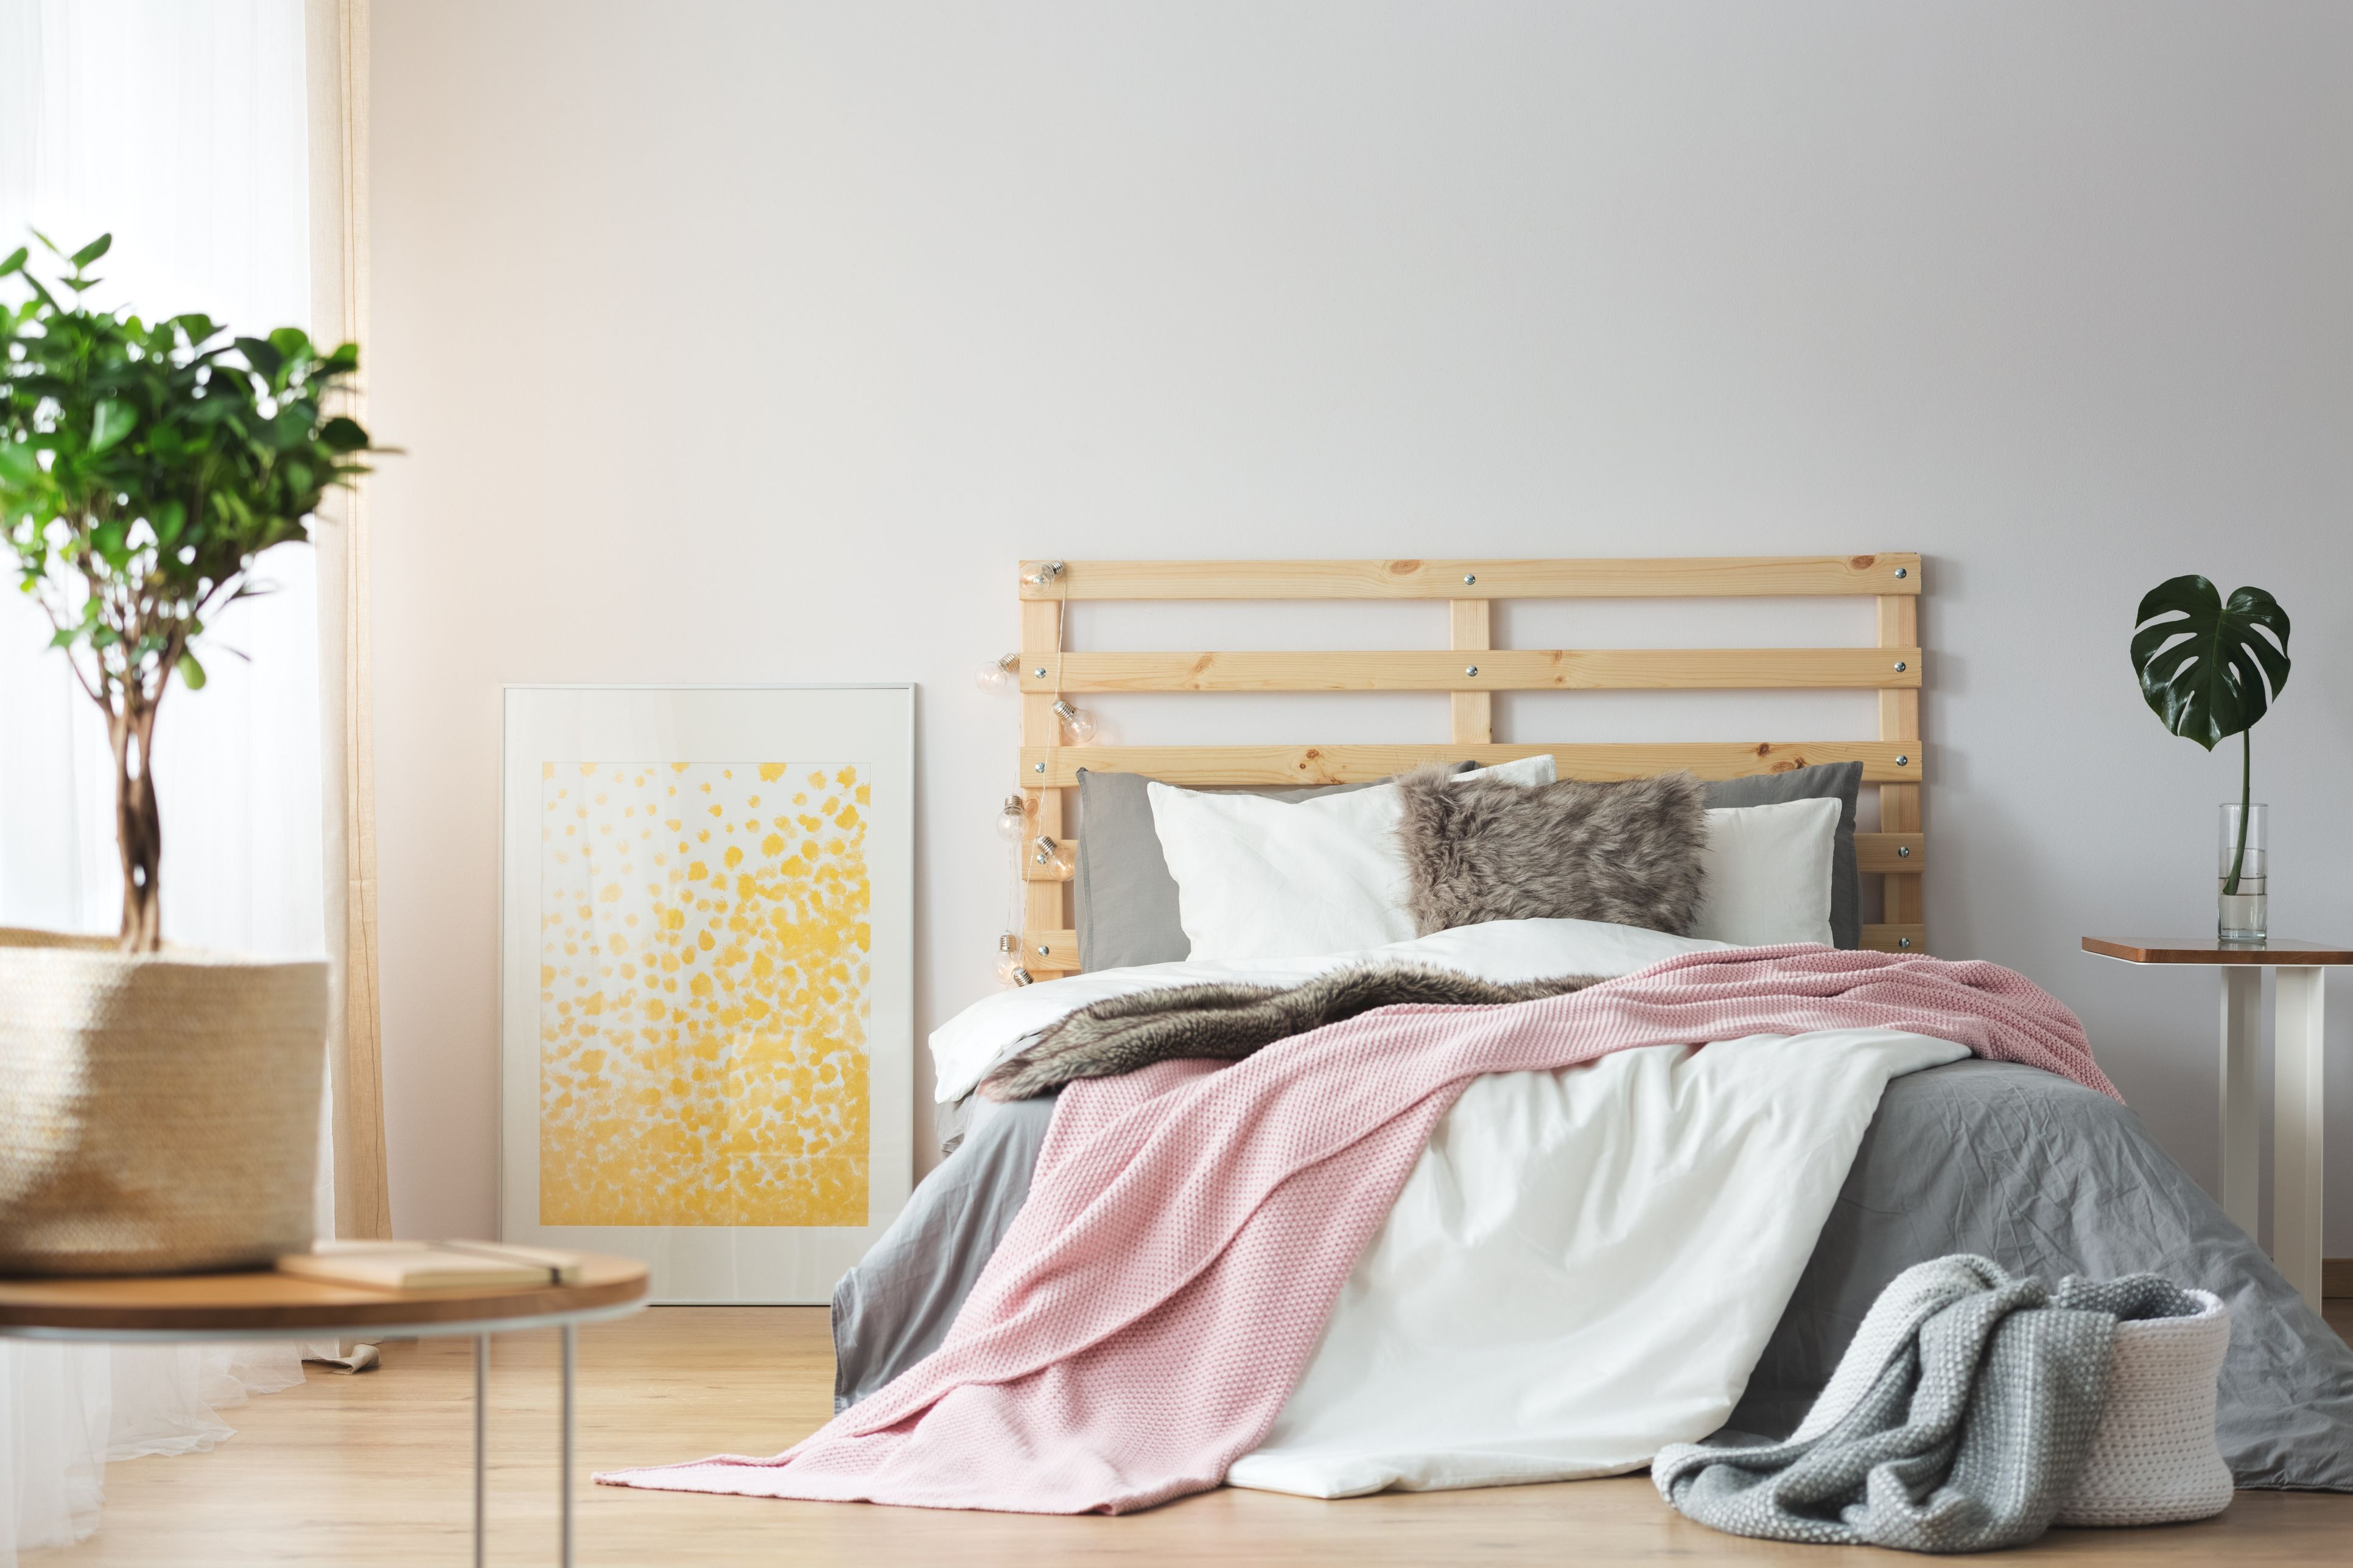 5 Best Mattresses For Back Pain 2018 According To Doctors